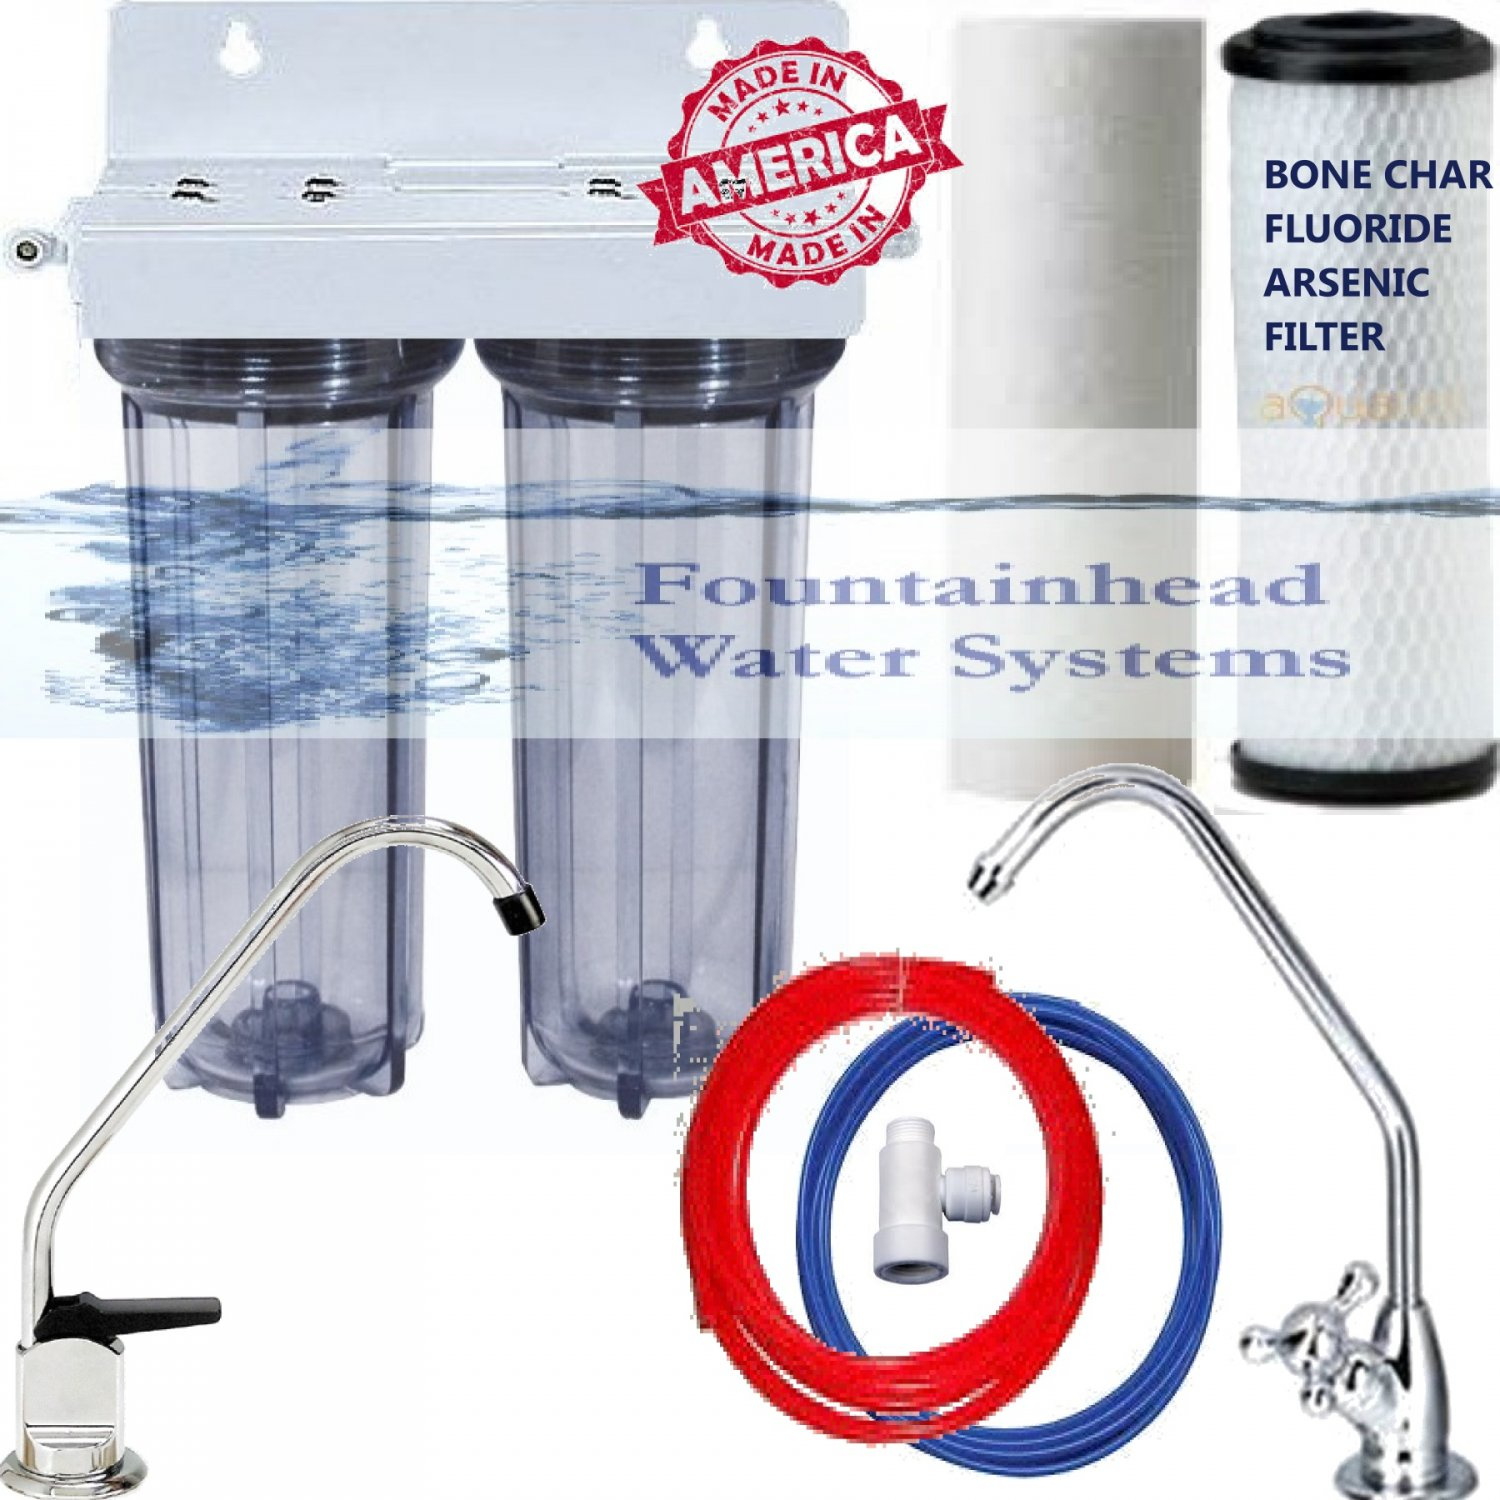 DUAL UNDER SINK FLUORIDE/ARSENIC/CHLORINE/VOC'S FILTER CLEAR CHOICE OF FAUCETS